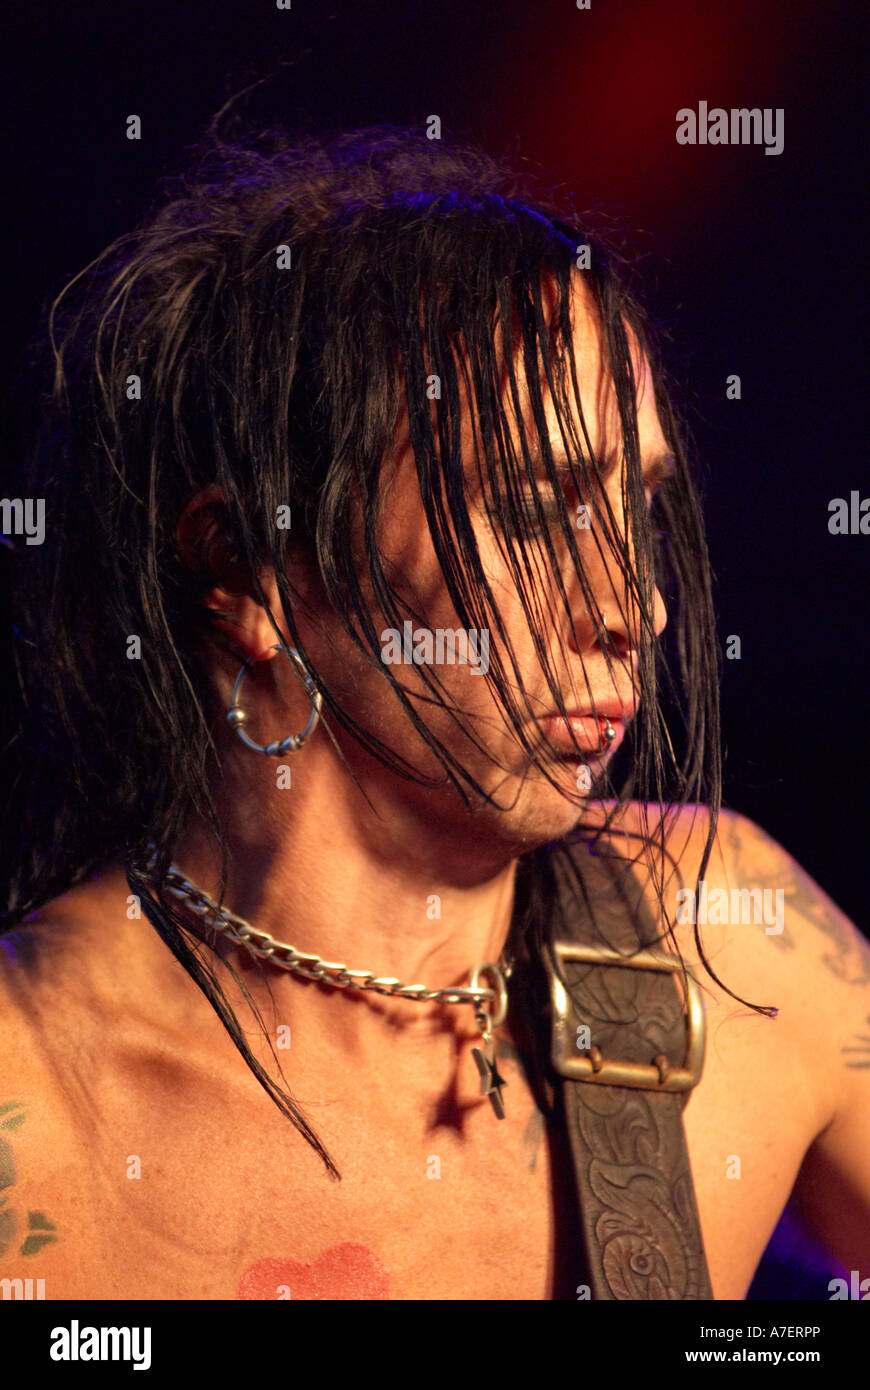 Dregen Backyard Babies dregen in backyard babies 2006 stock photo: 11818173 - alamy